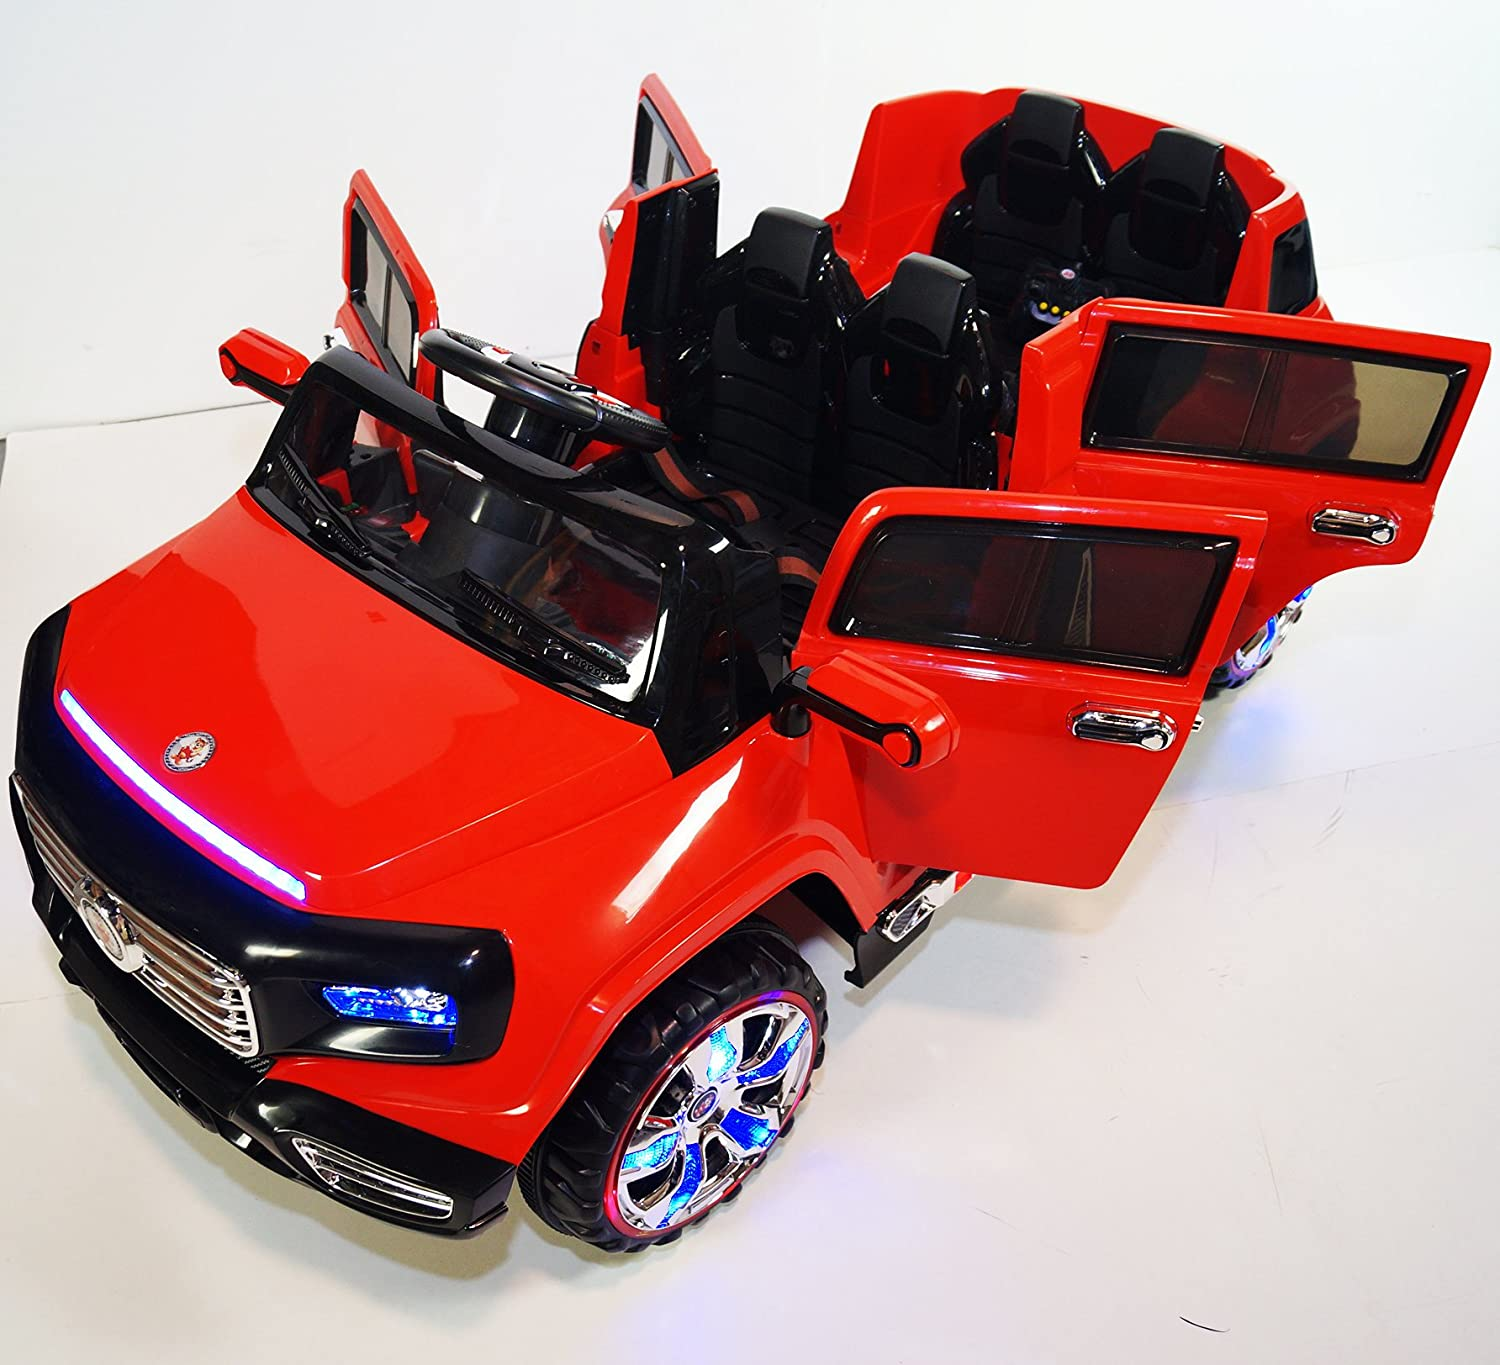 Stunning 2 seater Heavy Jeep Style 12v Battery Operated Ride on Car with Music, Lights, Doors, MP3 and Remote Control